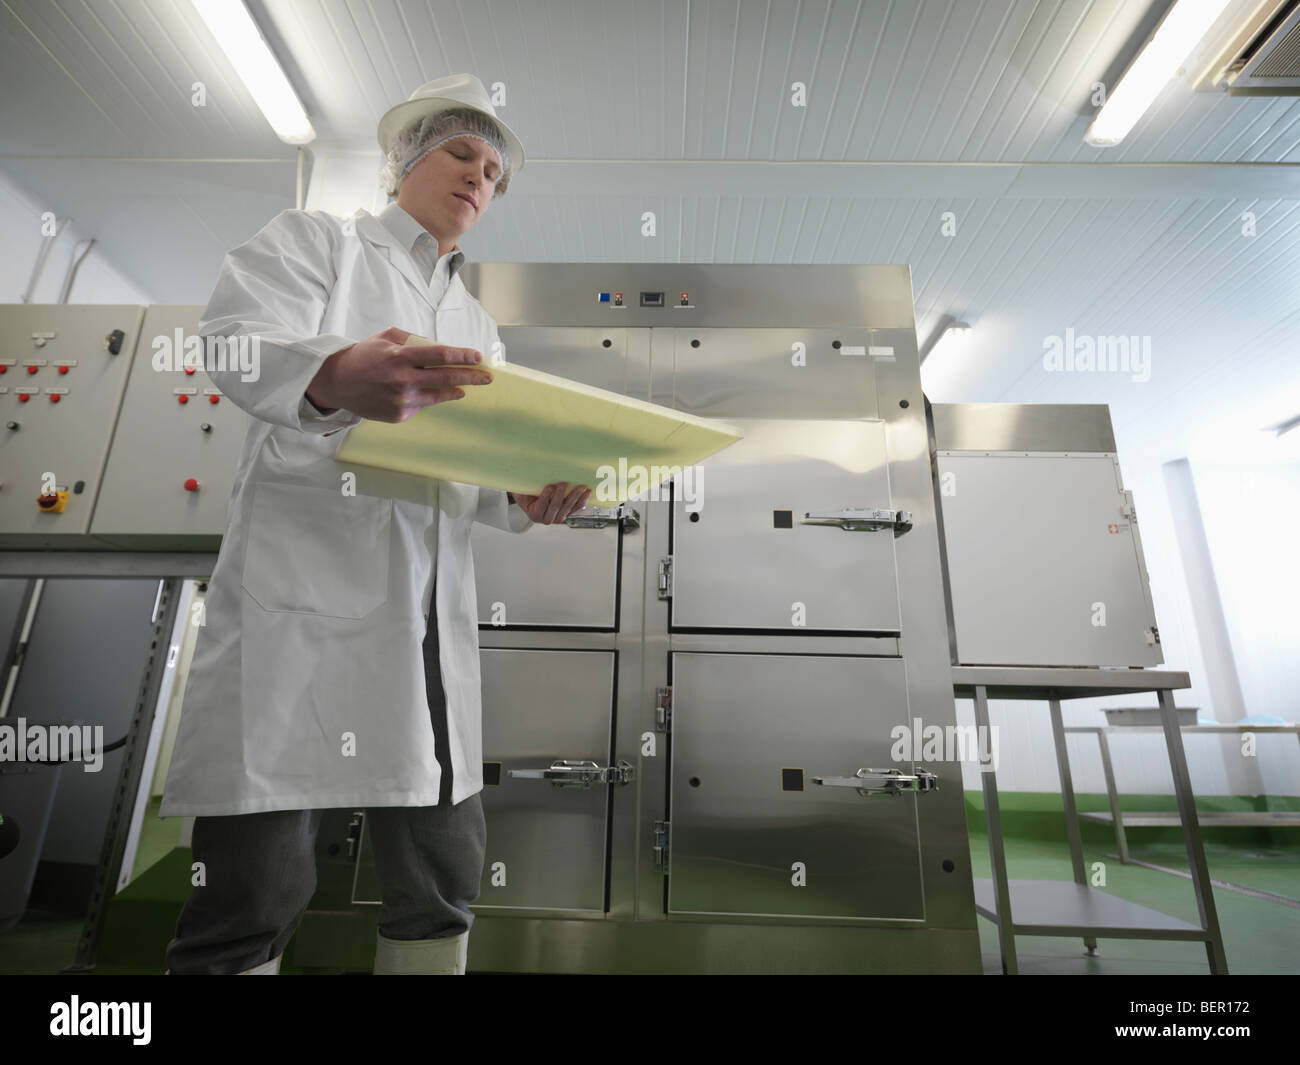 Food Worker With Cutting Board - Stock Image